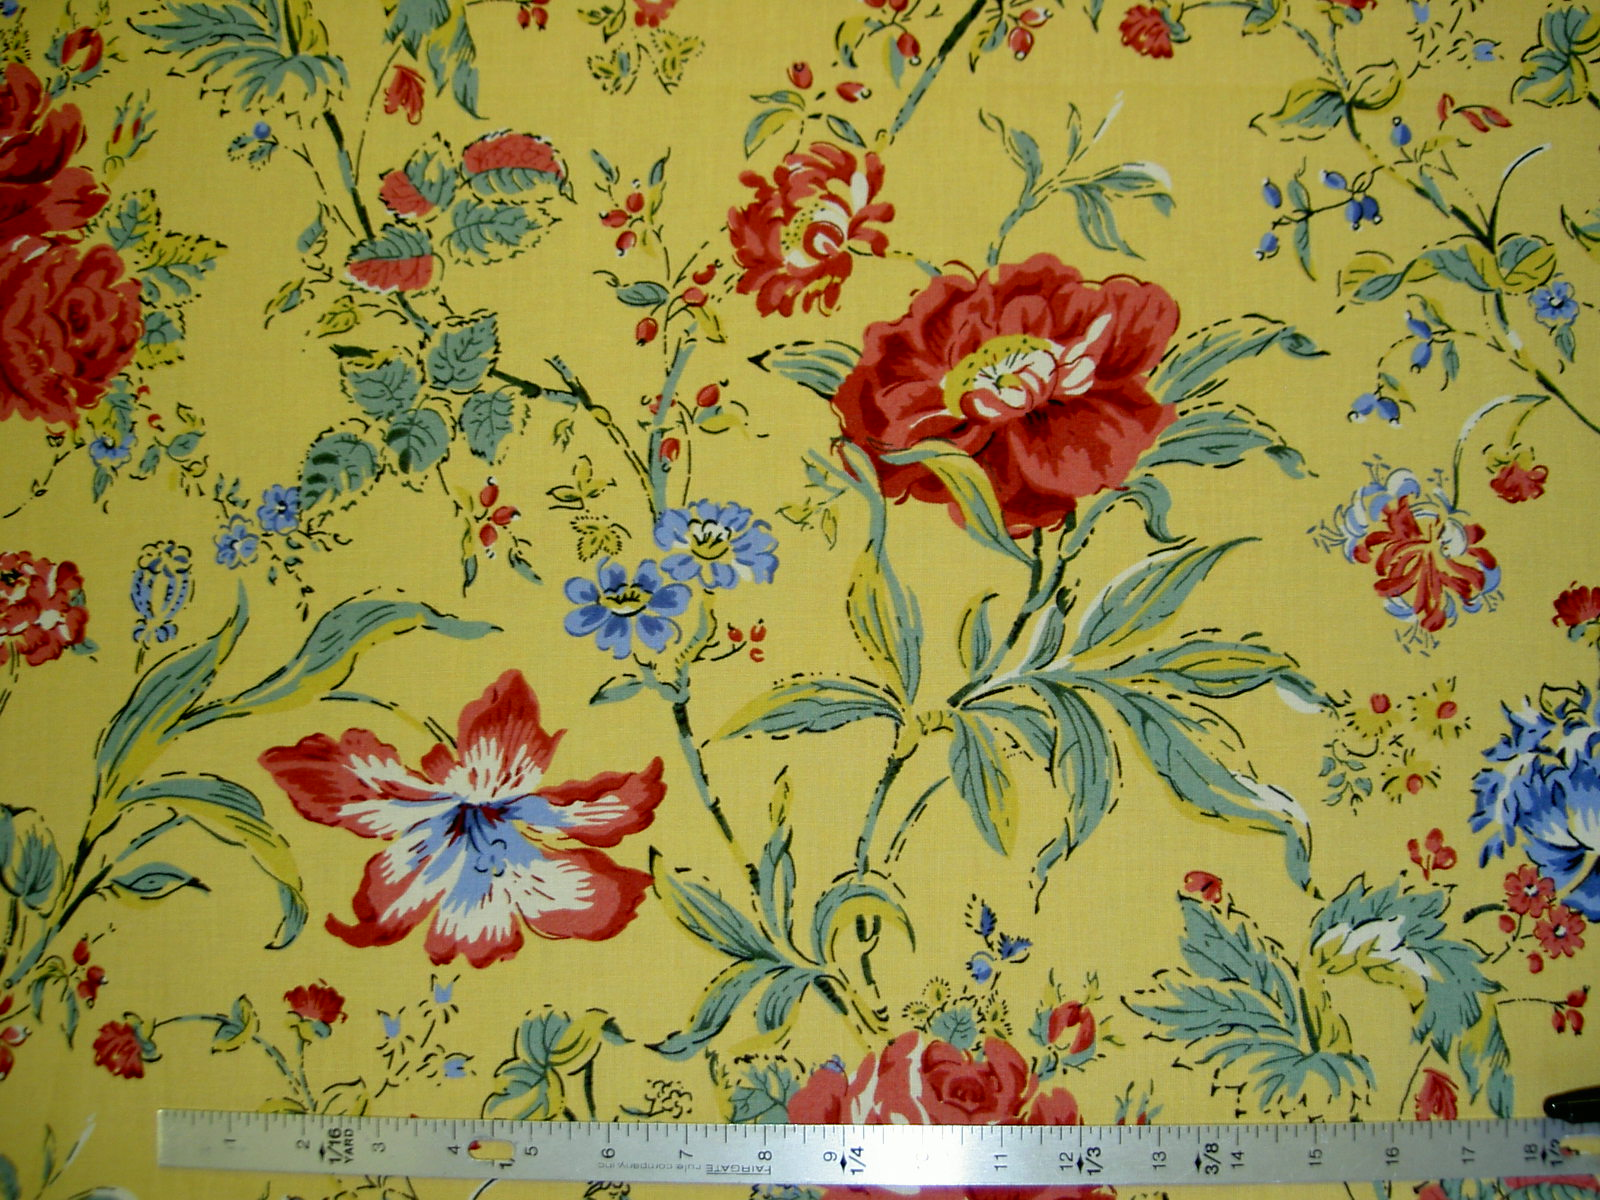 order 18 x 18 inch sample of this home decor designer fabric from schindlers fabrics